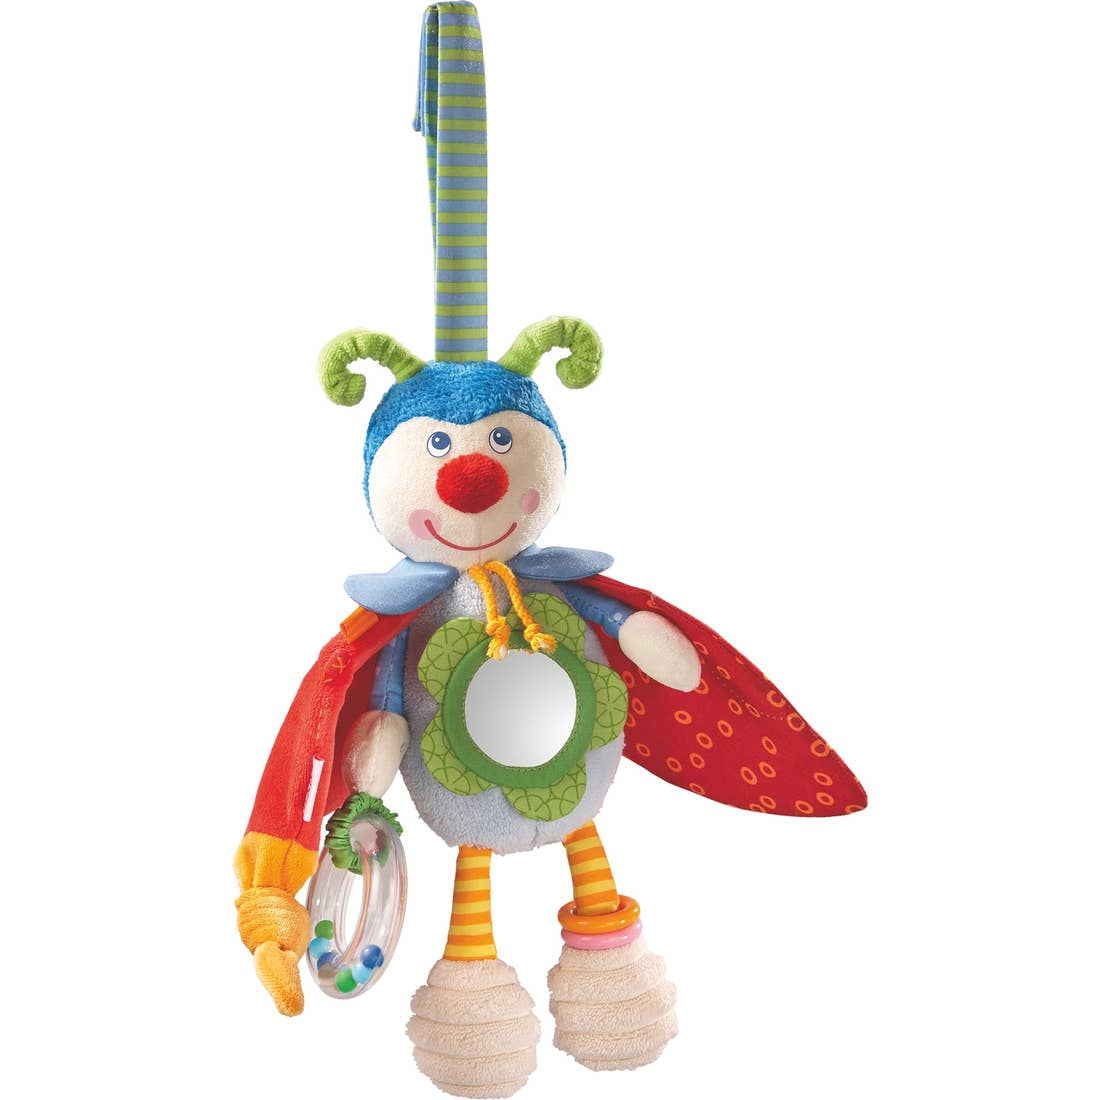 Haba Hanging Play Doll Beetle Bodo